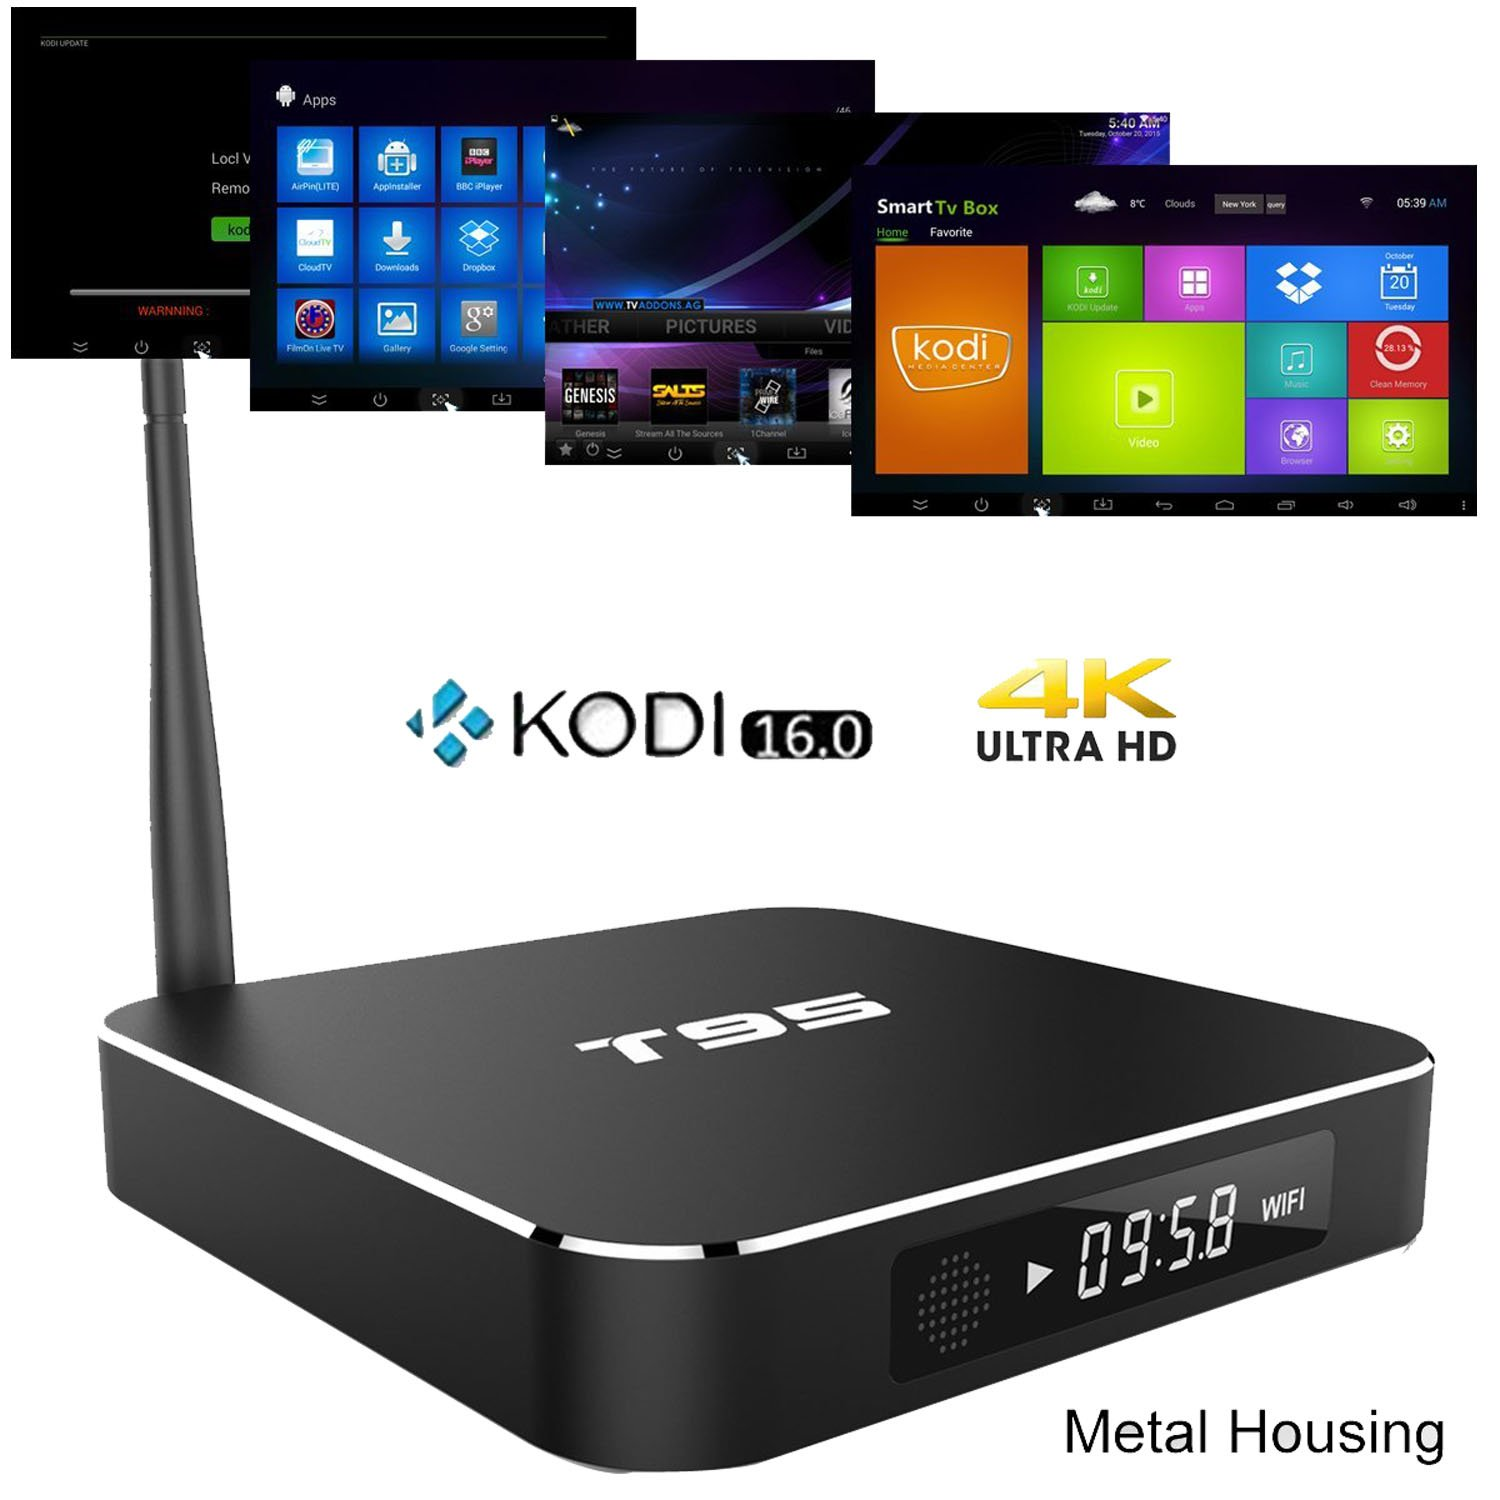 Android Lollipop 5 1 1 stock firmware for Sunvell T95 TV Box